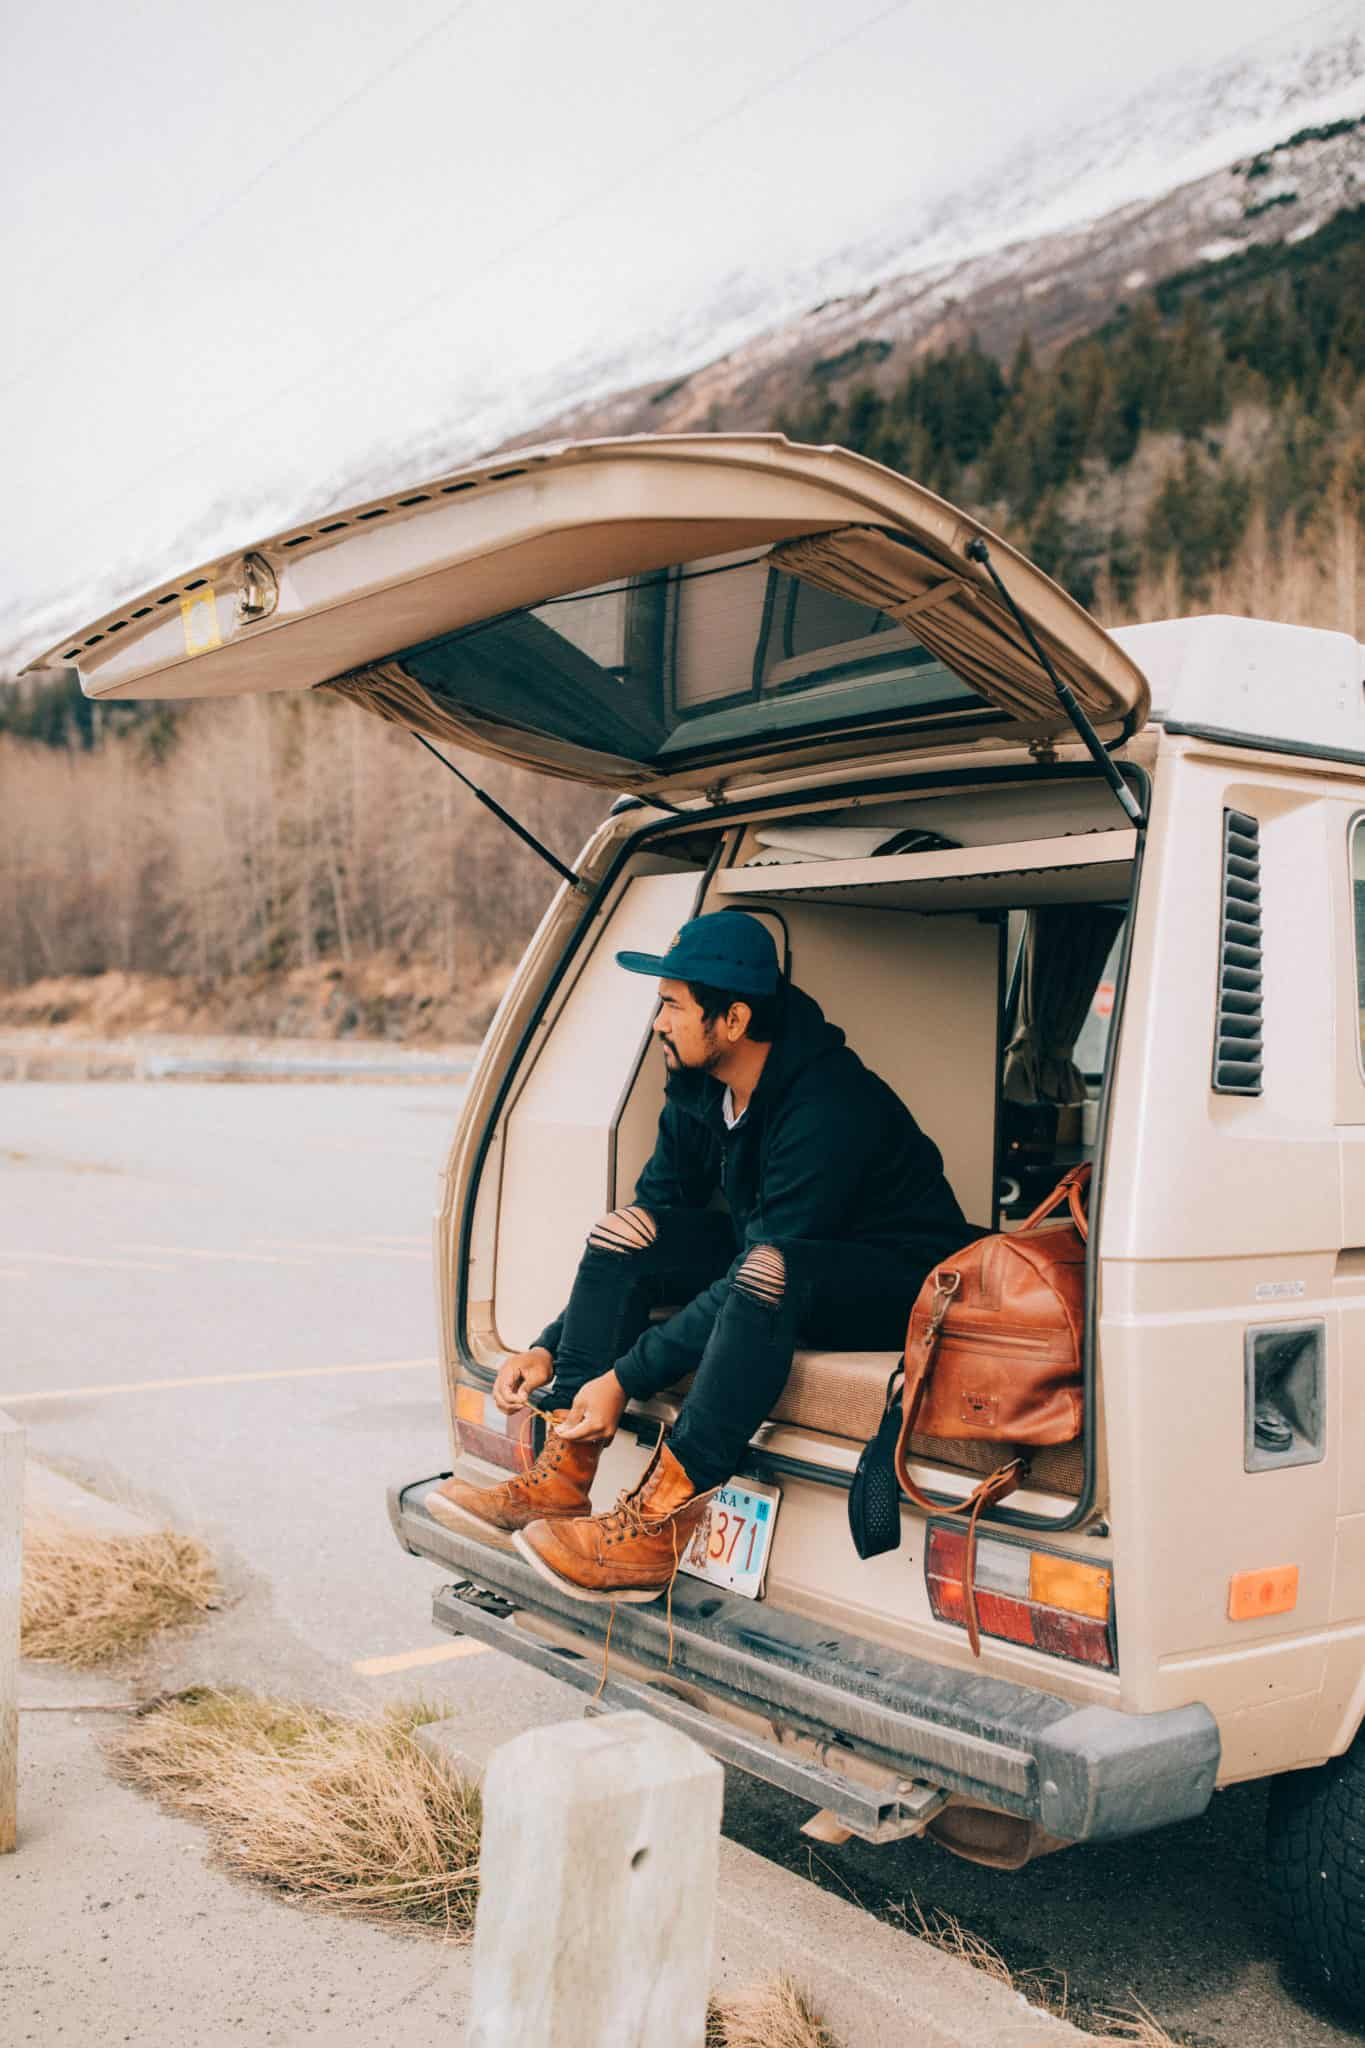 Berty Mandagie sitting in back of VW Westfalia